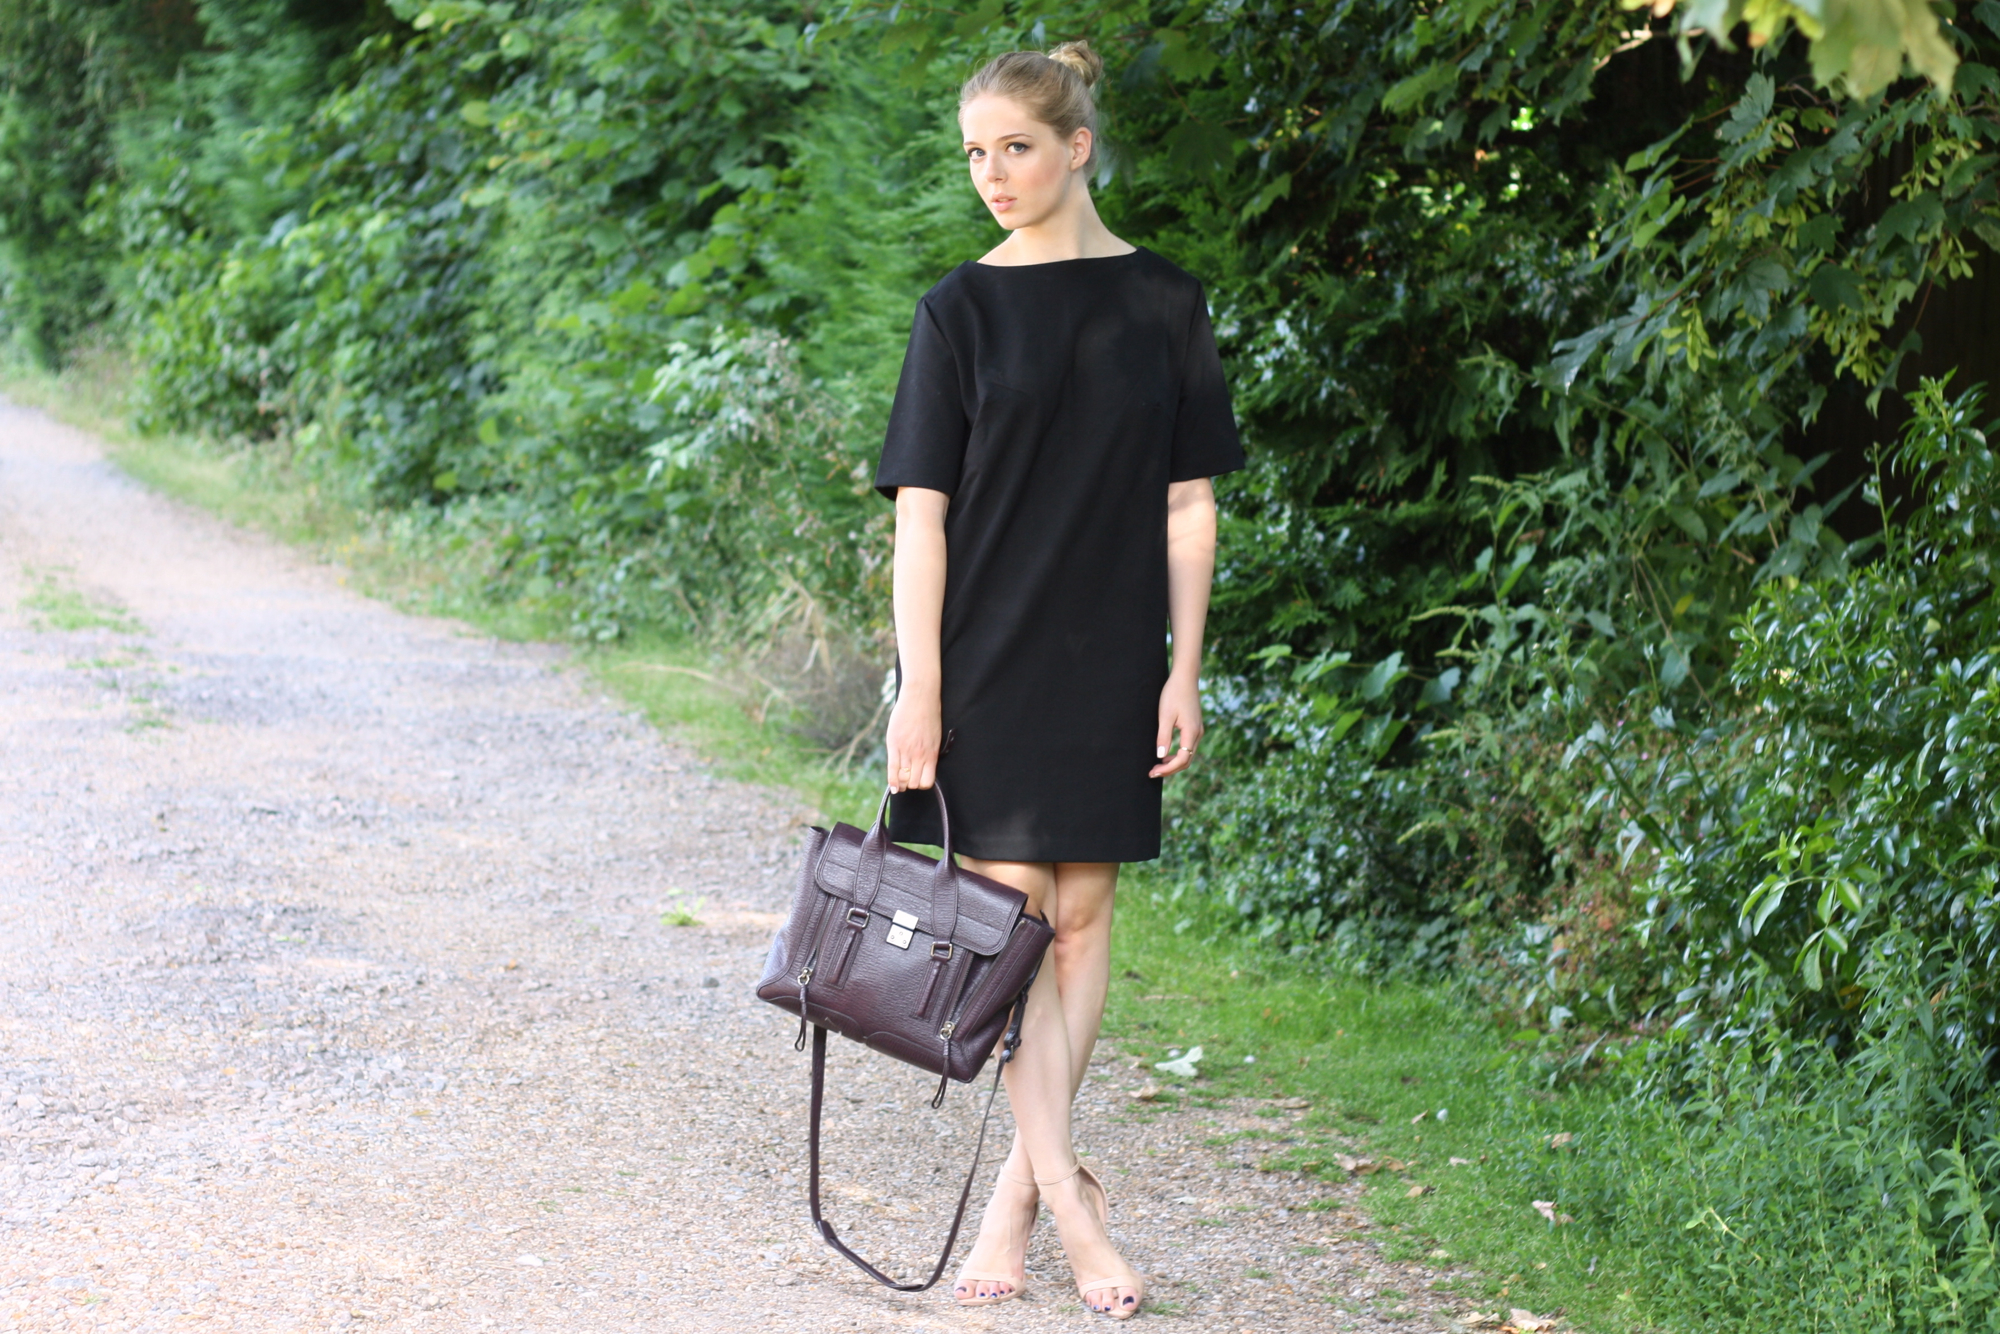 & Other Stories black jersey dress